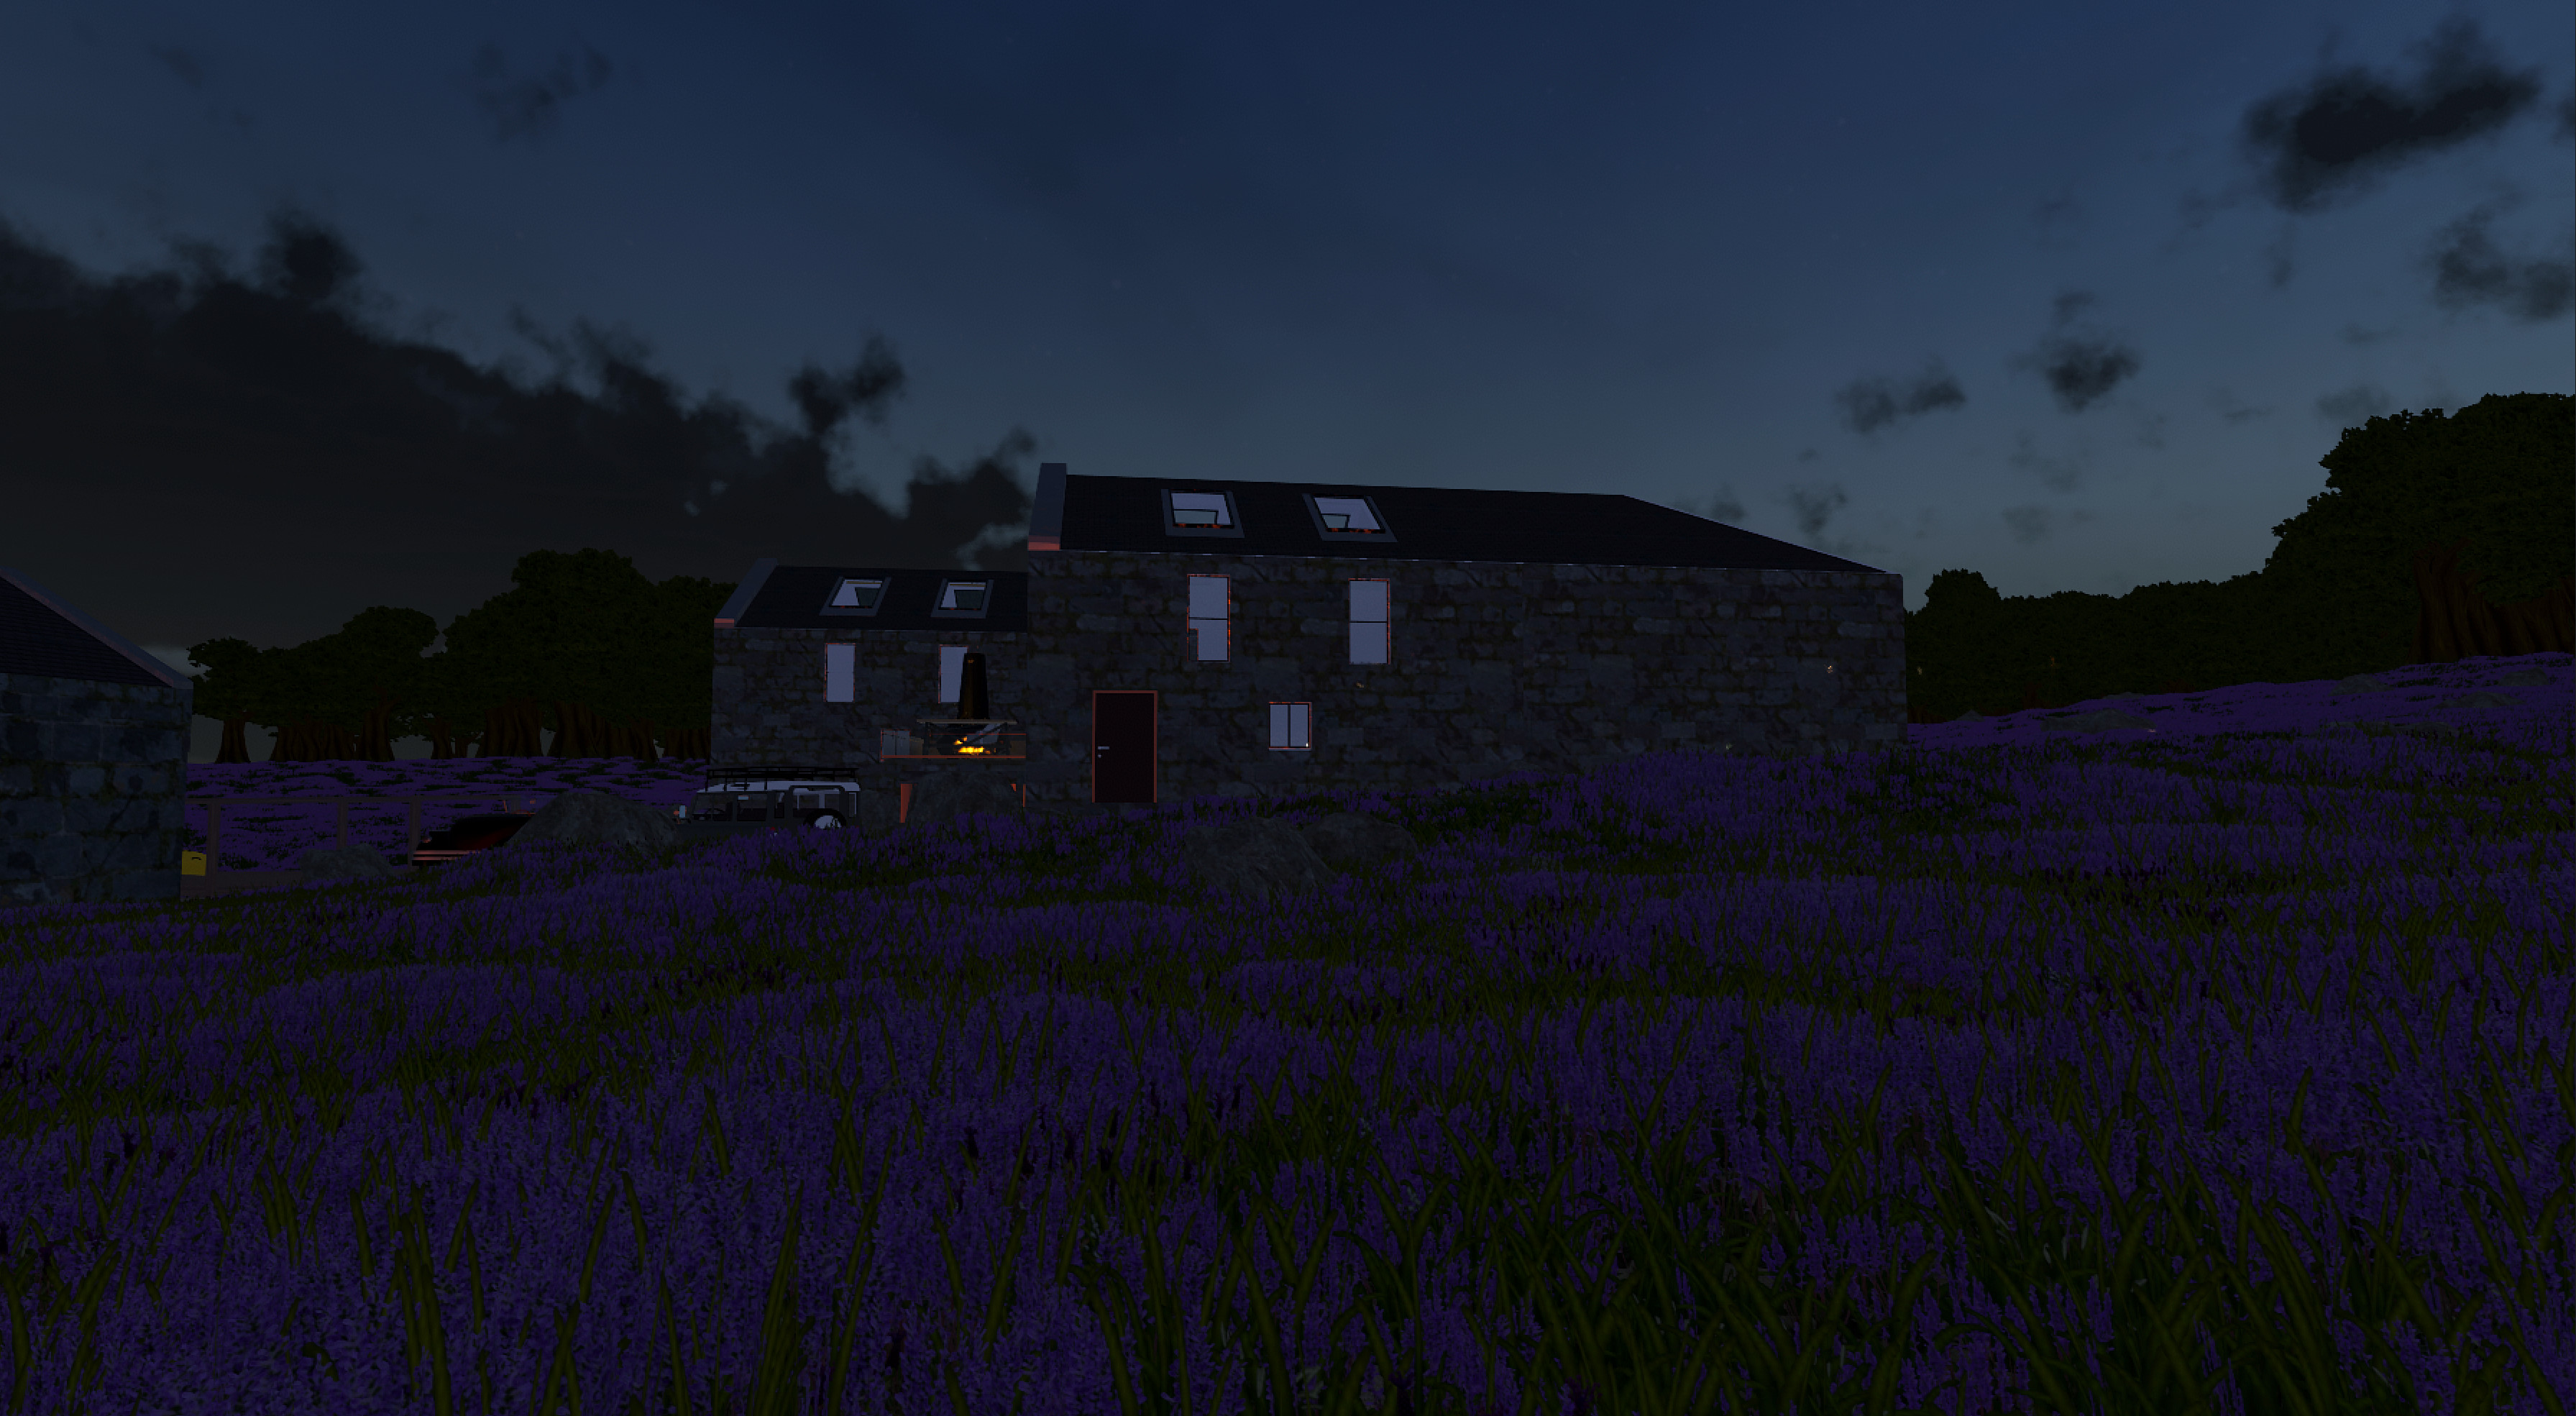 I've been working on a more specific to the Channel Islands environment setup - to be able to quickly go from an architectural model to in-situ with a nice feel. This image is an example of this prototype setup.